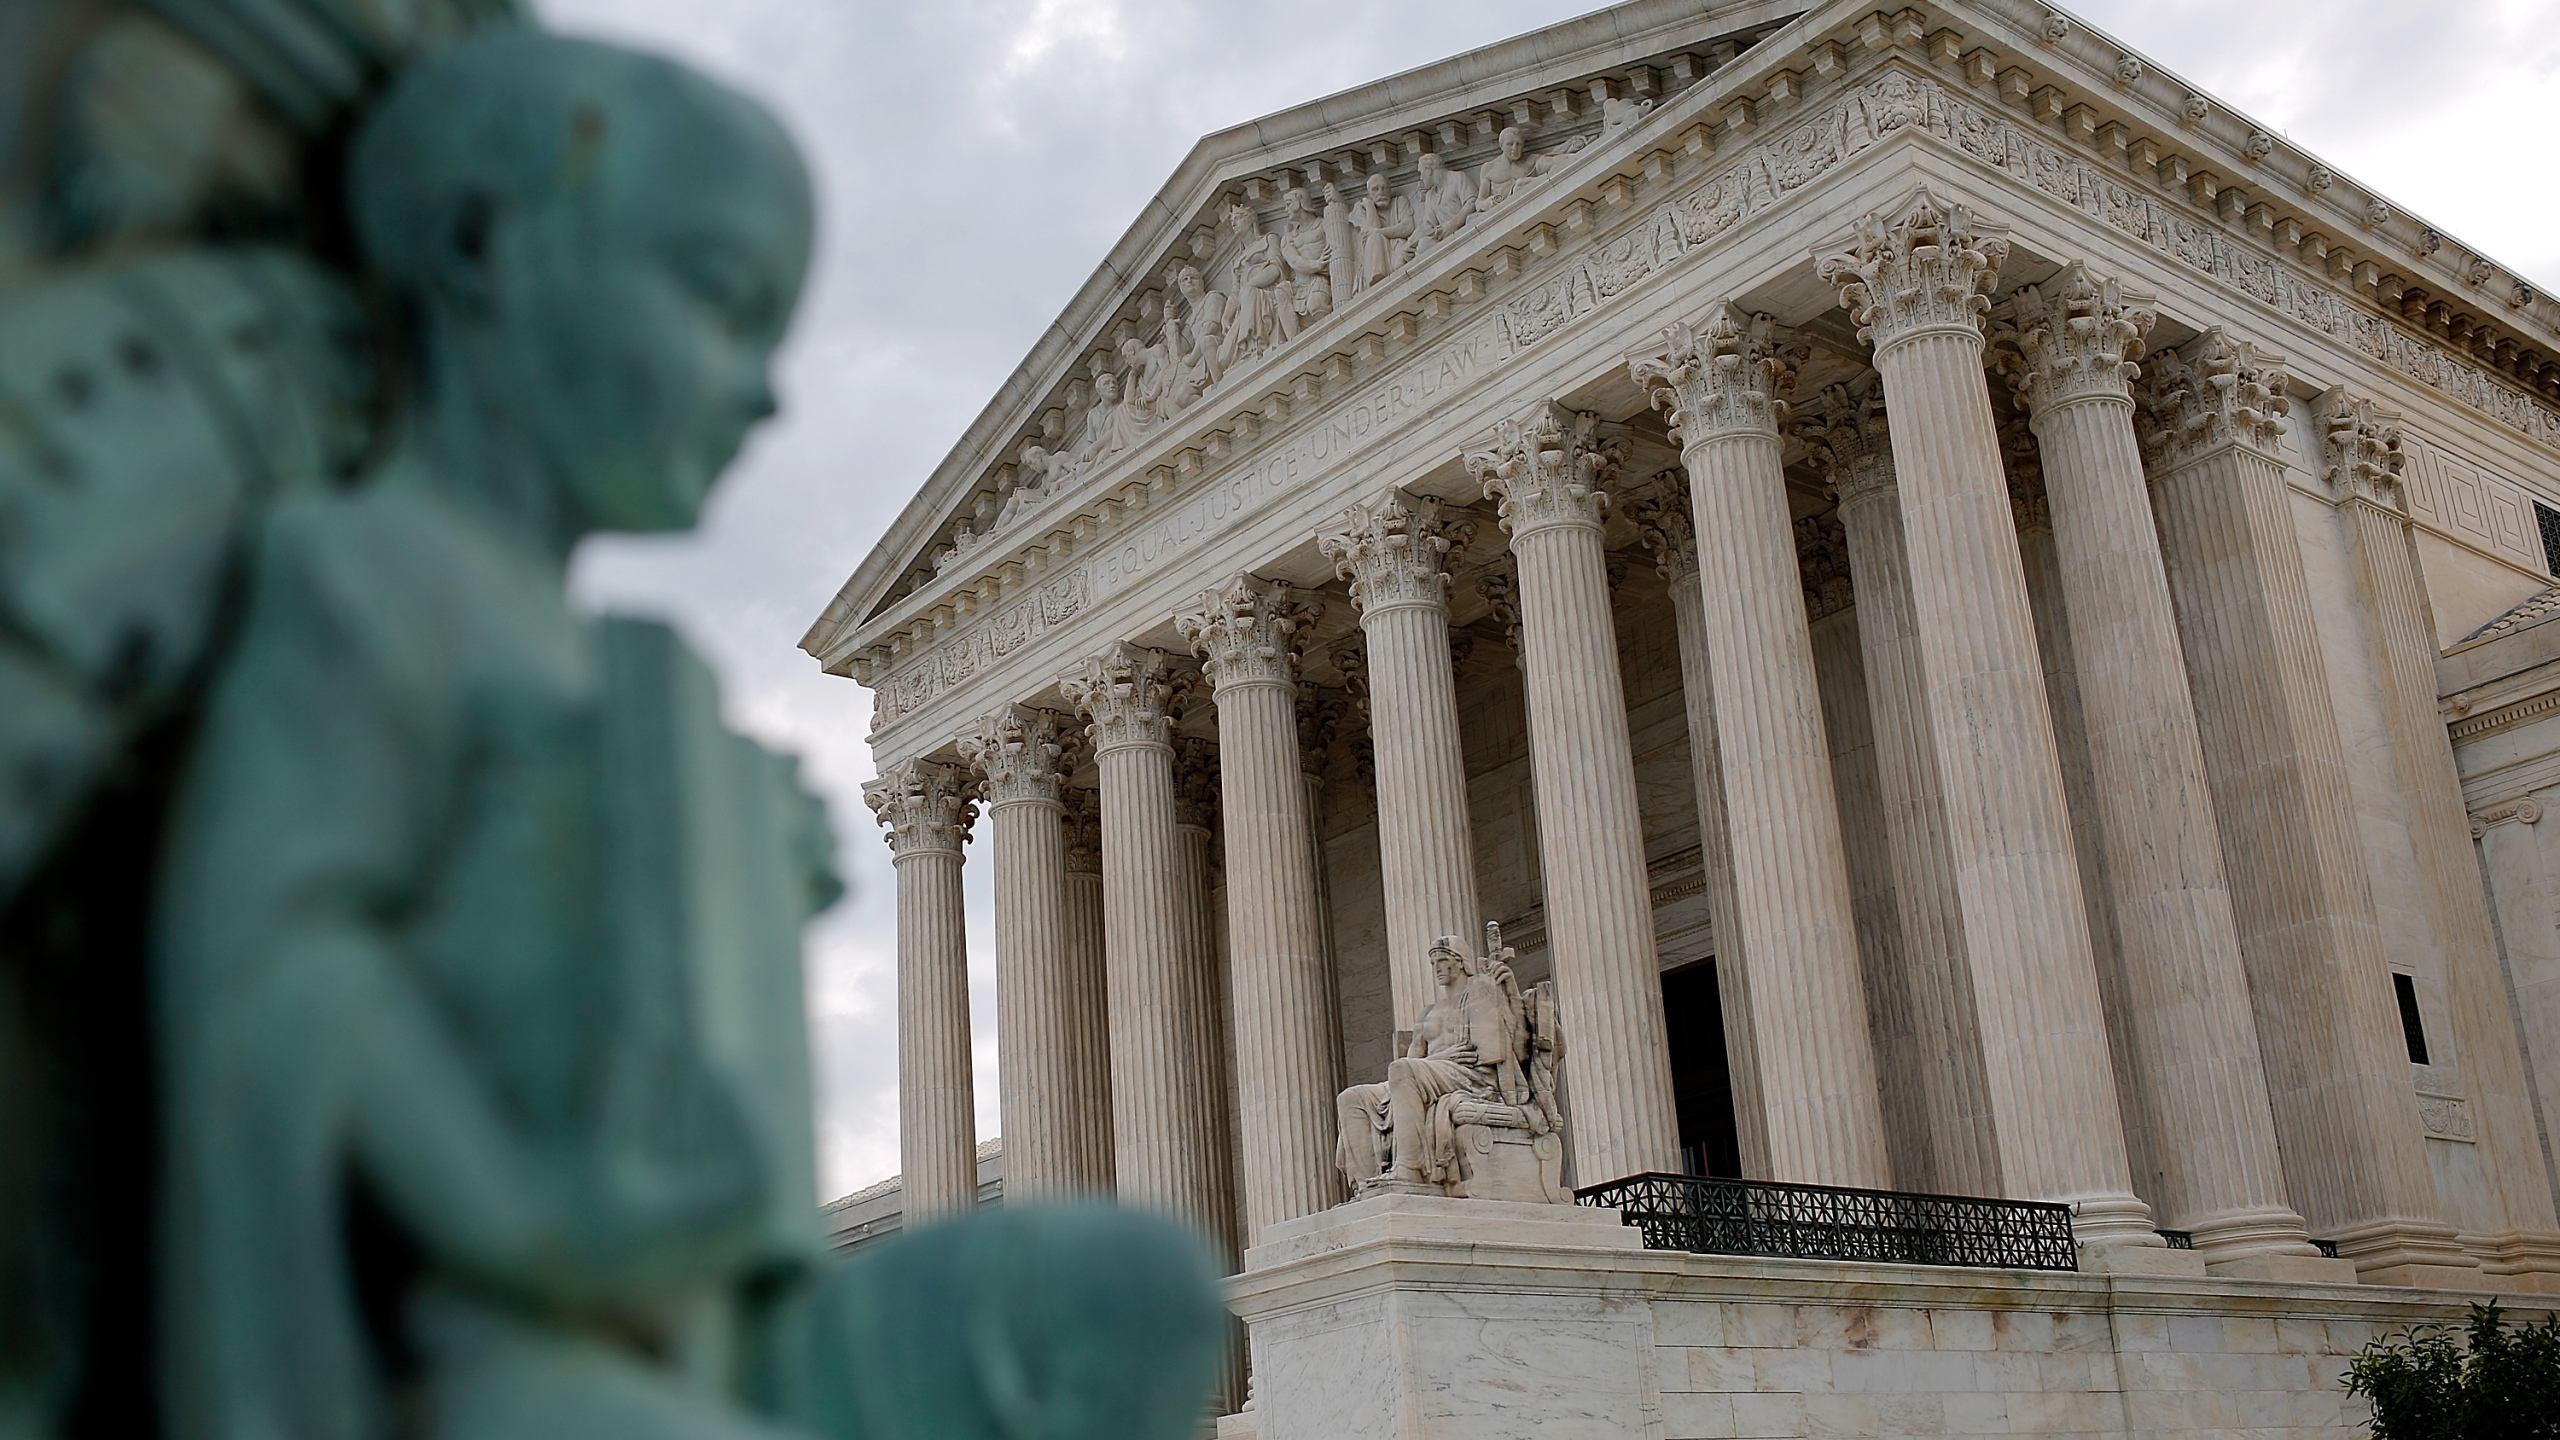 The U.S. Supreme Court is seen on May 23, 2016 in Washington, D.C. (Win McNamee/Getty Images)